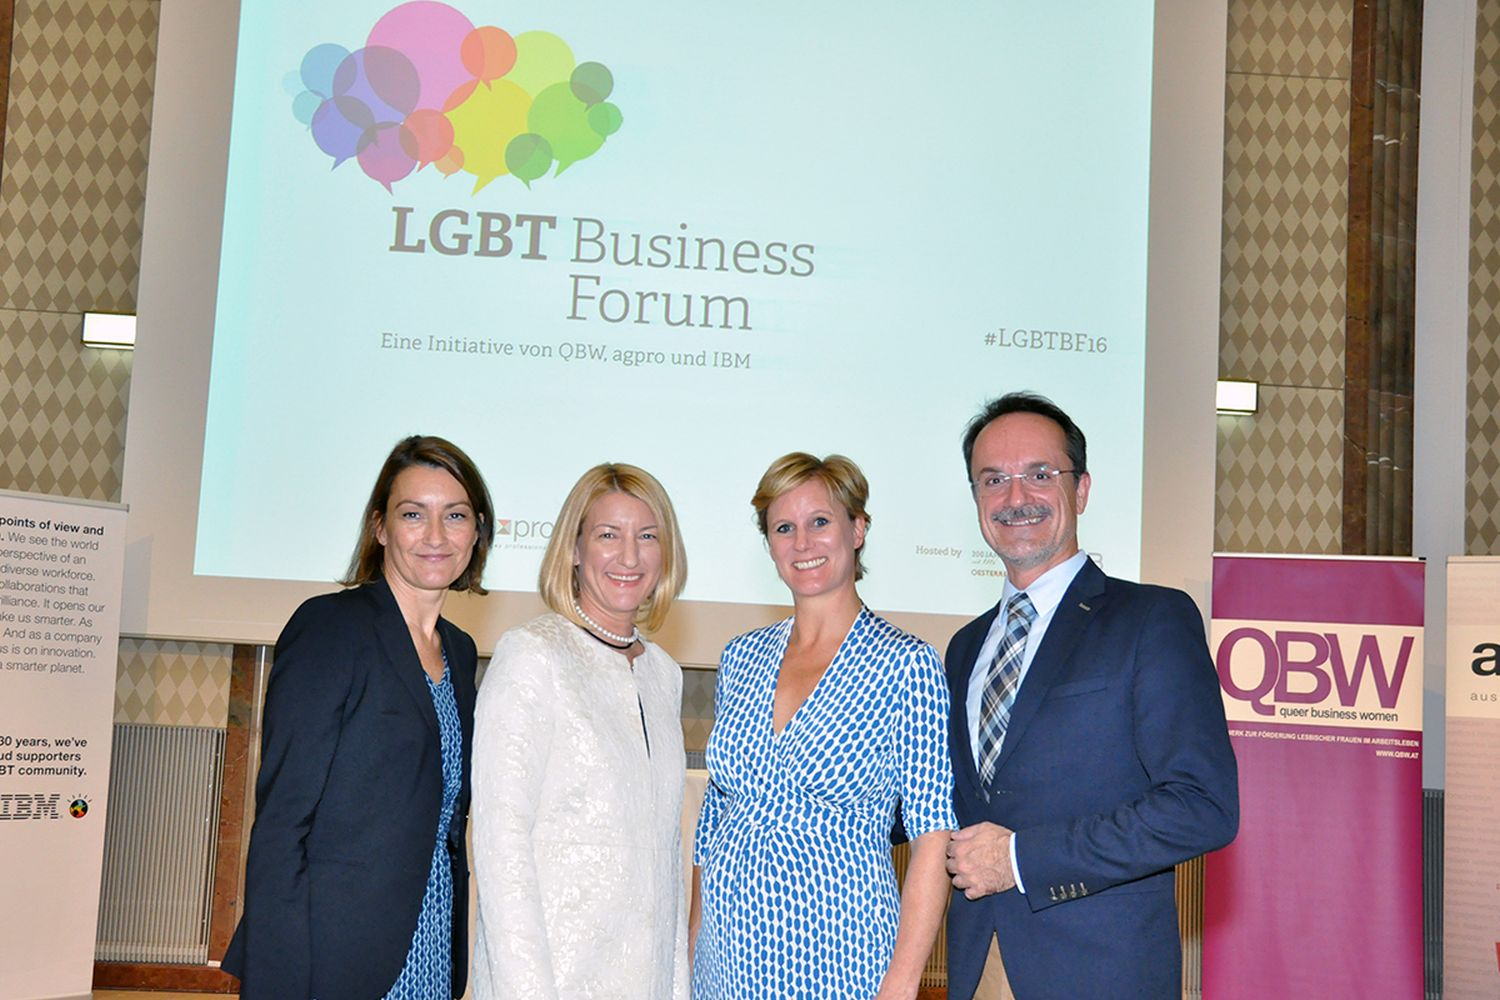 PrideBiz_4.LGBT+ BusinessForum